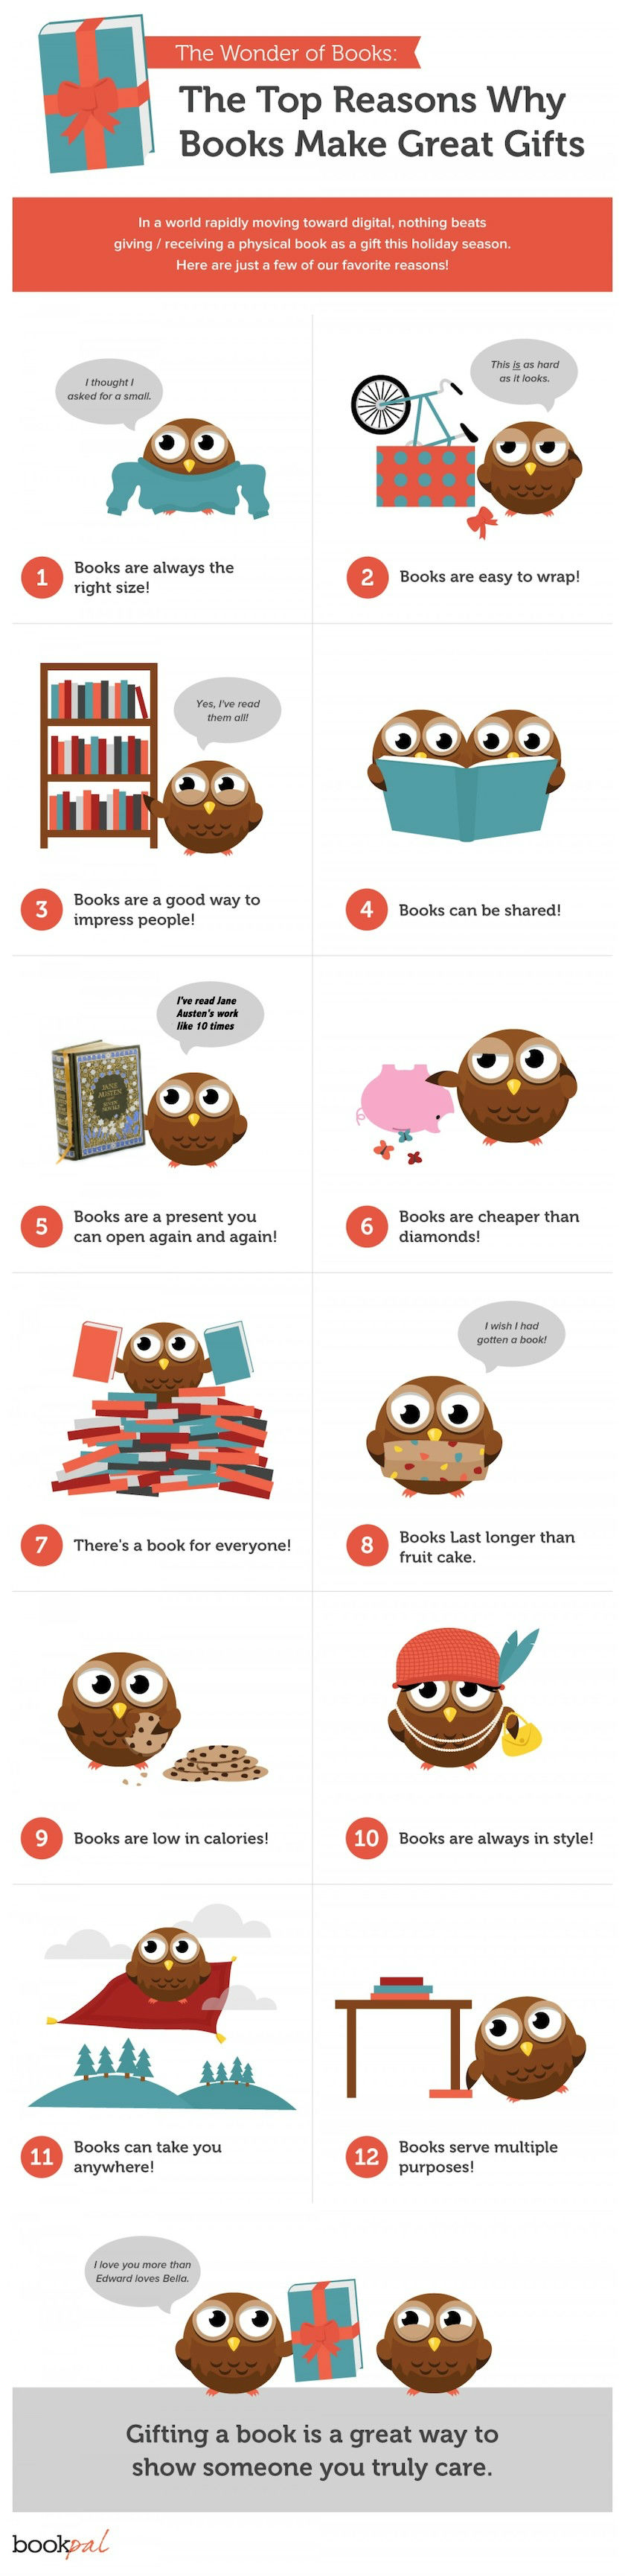 Book-make-great-gifts-infographic2